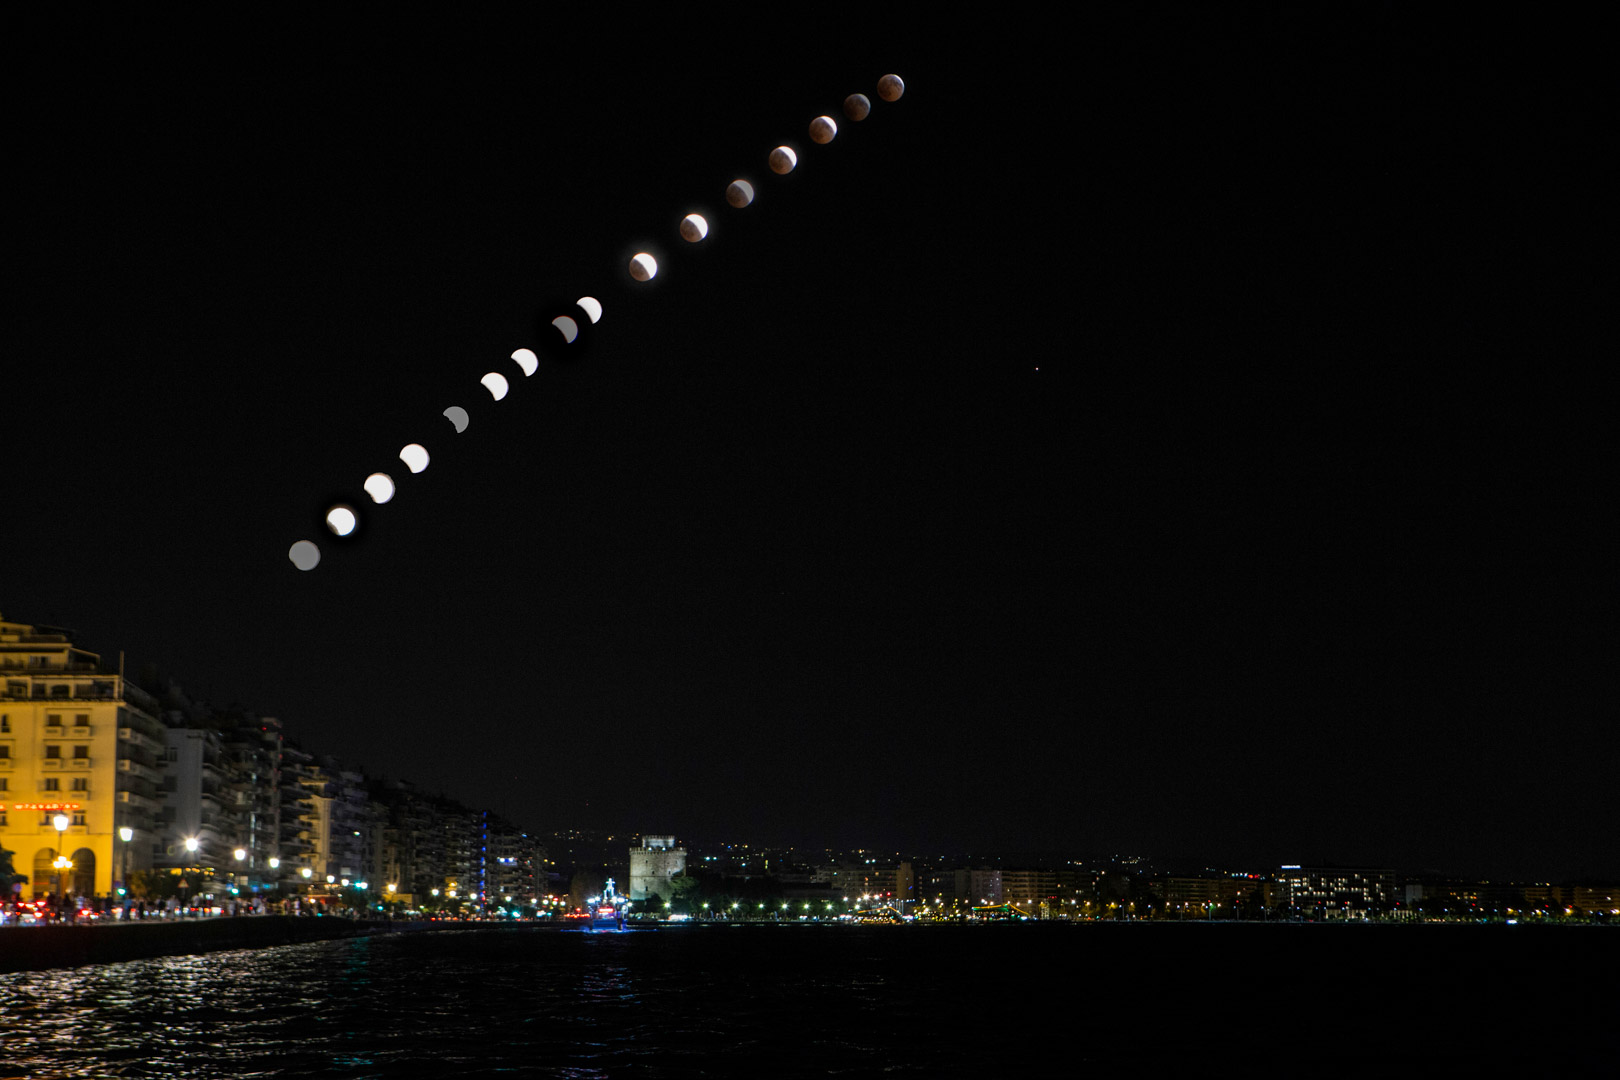 Lunar eclipse over the city of Thessaloniki